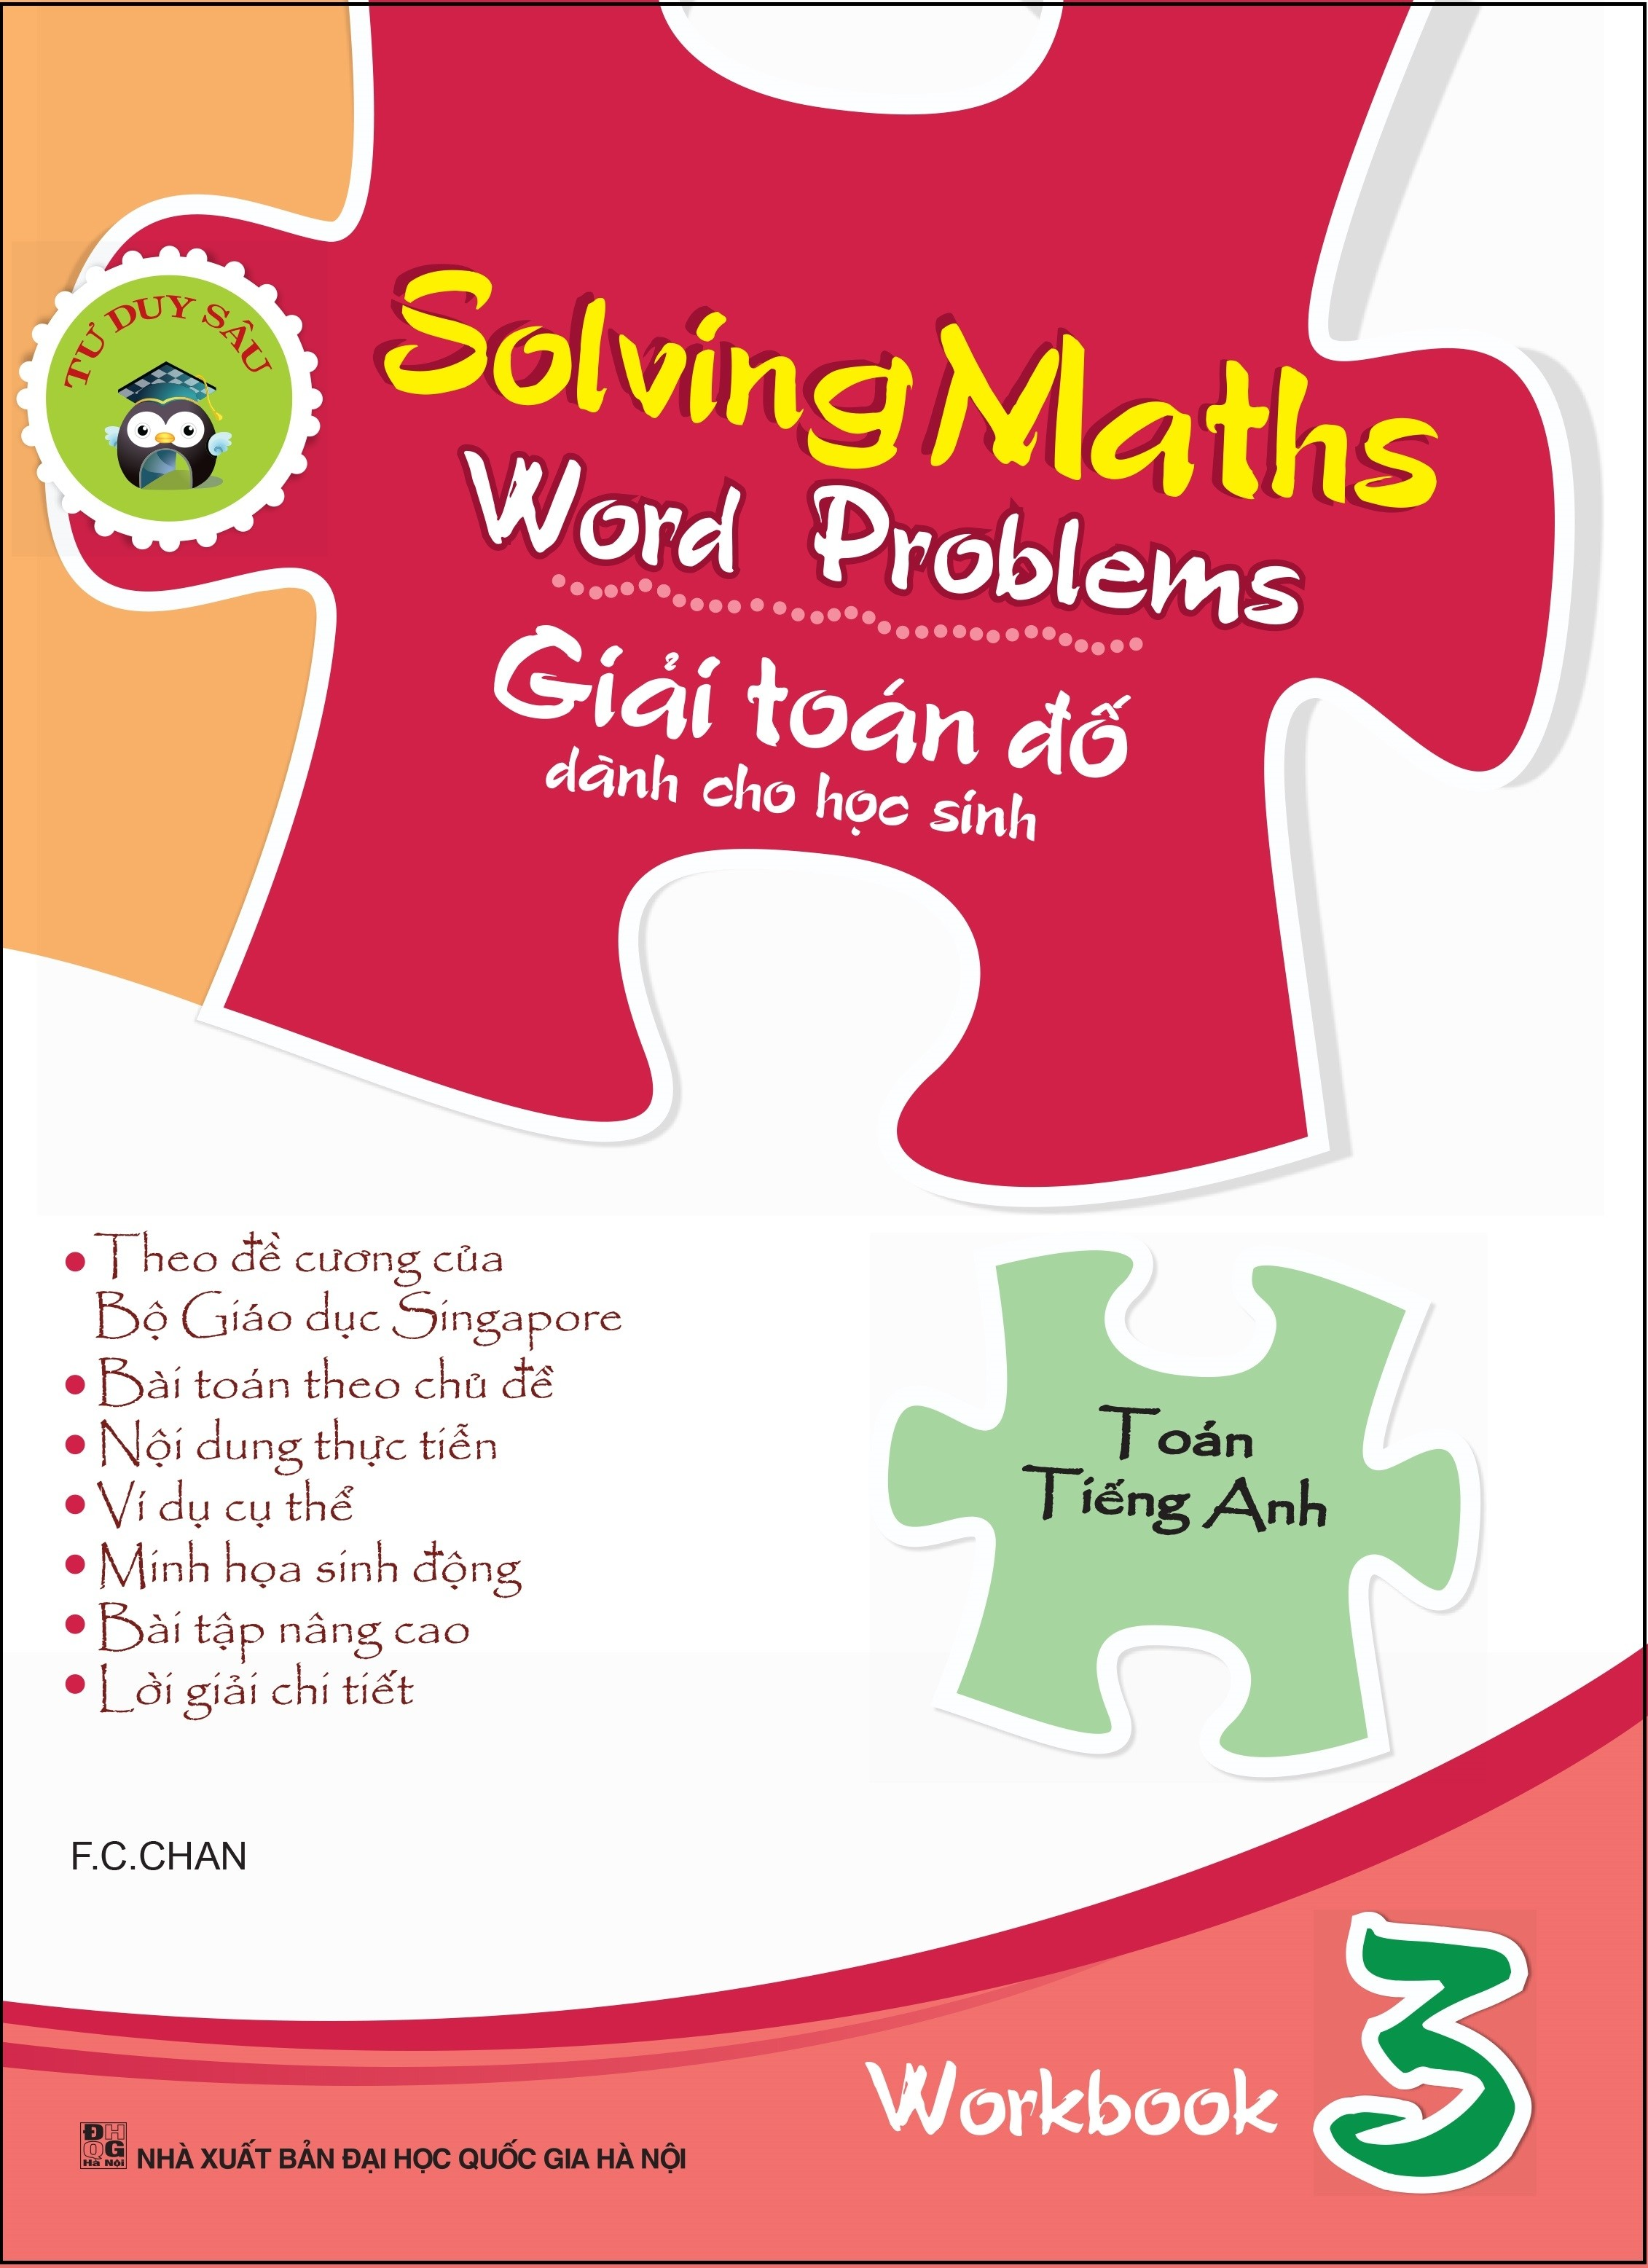 solving maths word problems - giai toan do danh cho hoc sinh - workbook 3